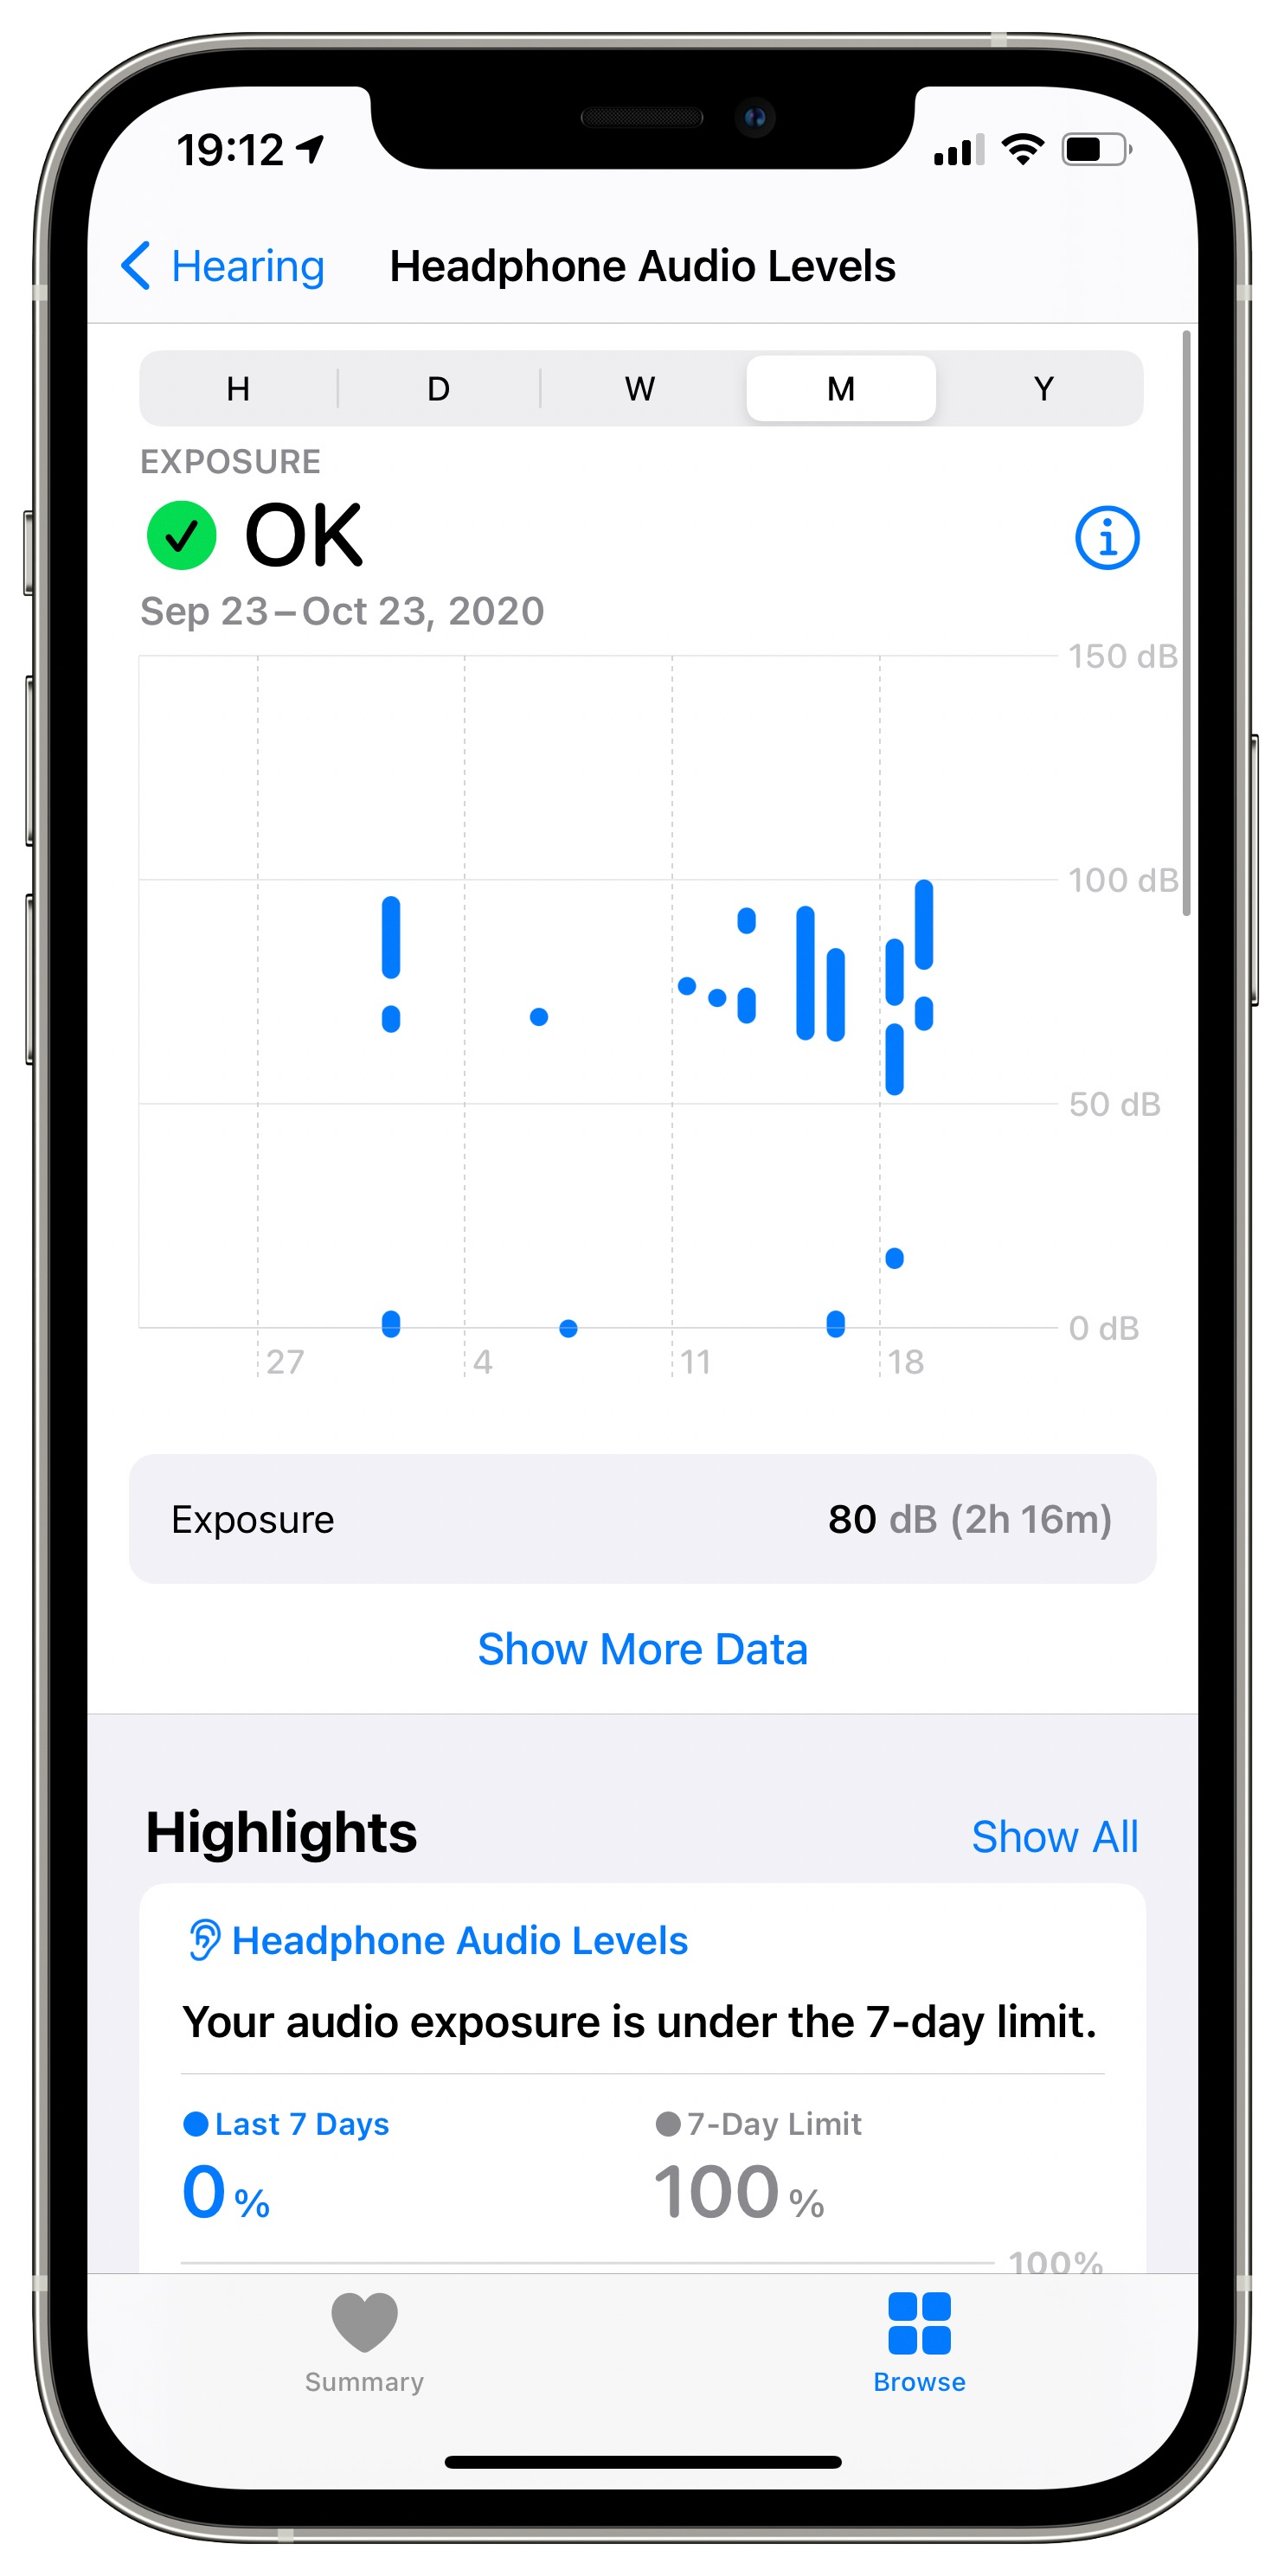 The Health app on iOS 14 with the Headphone Audio Levels screen on iPhone